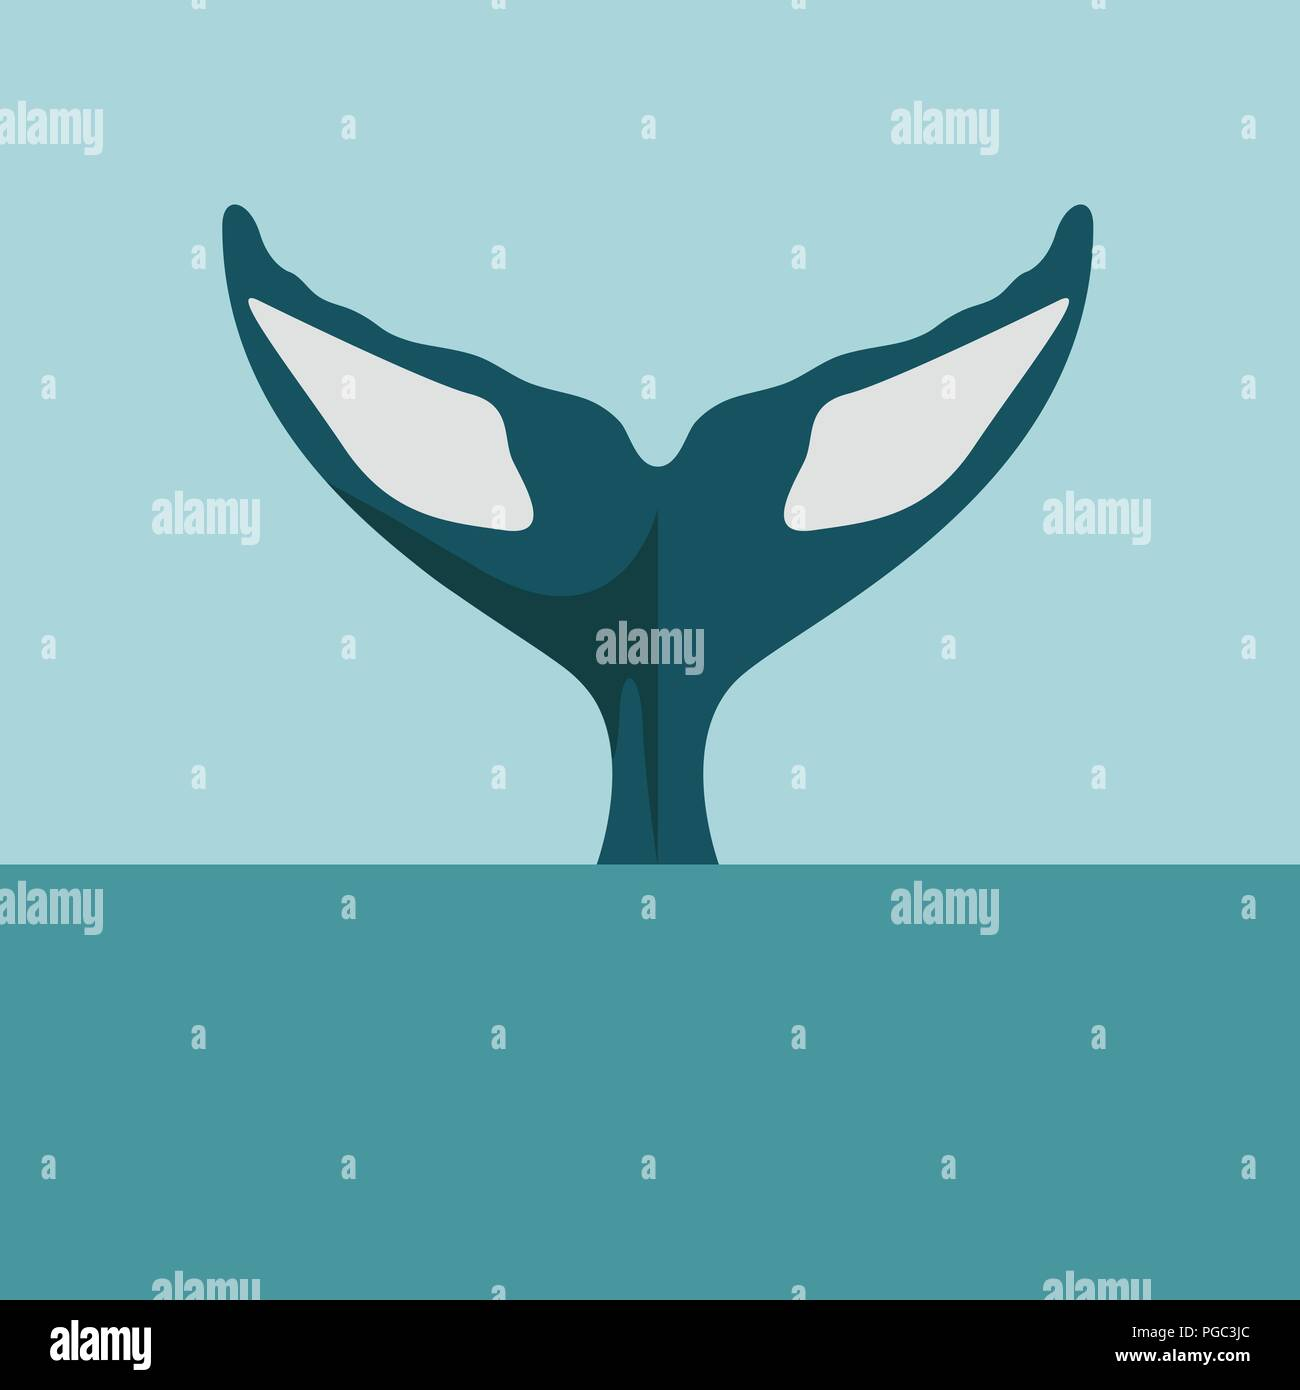 Whale tail diving in ocean or sea body part of killer or humpback whale in flat vector illustration style - Stock Image